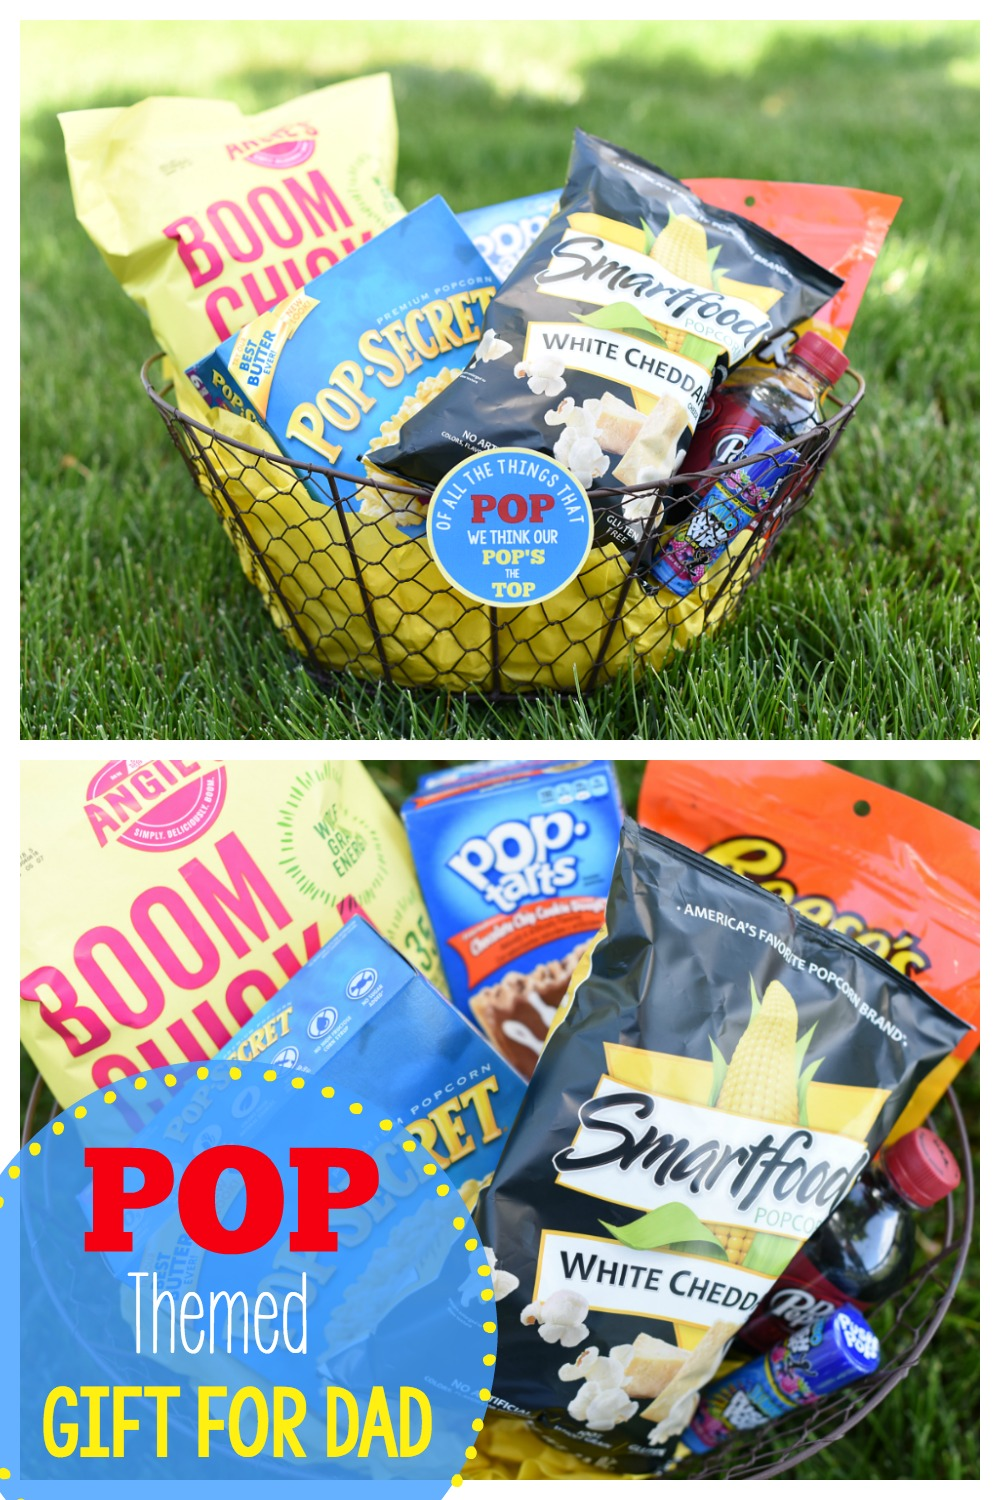 DIY Father's Day Basket Ideas-Fill a basket with all things POP for a cute pop themed Father's Day gift basket for Dad. So easy to make and fun to give! #fathersday #giftsfordad #dadgifts #fathersdaygift #fathersdaygifts